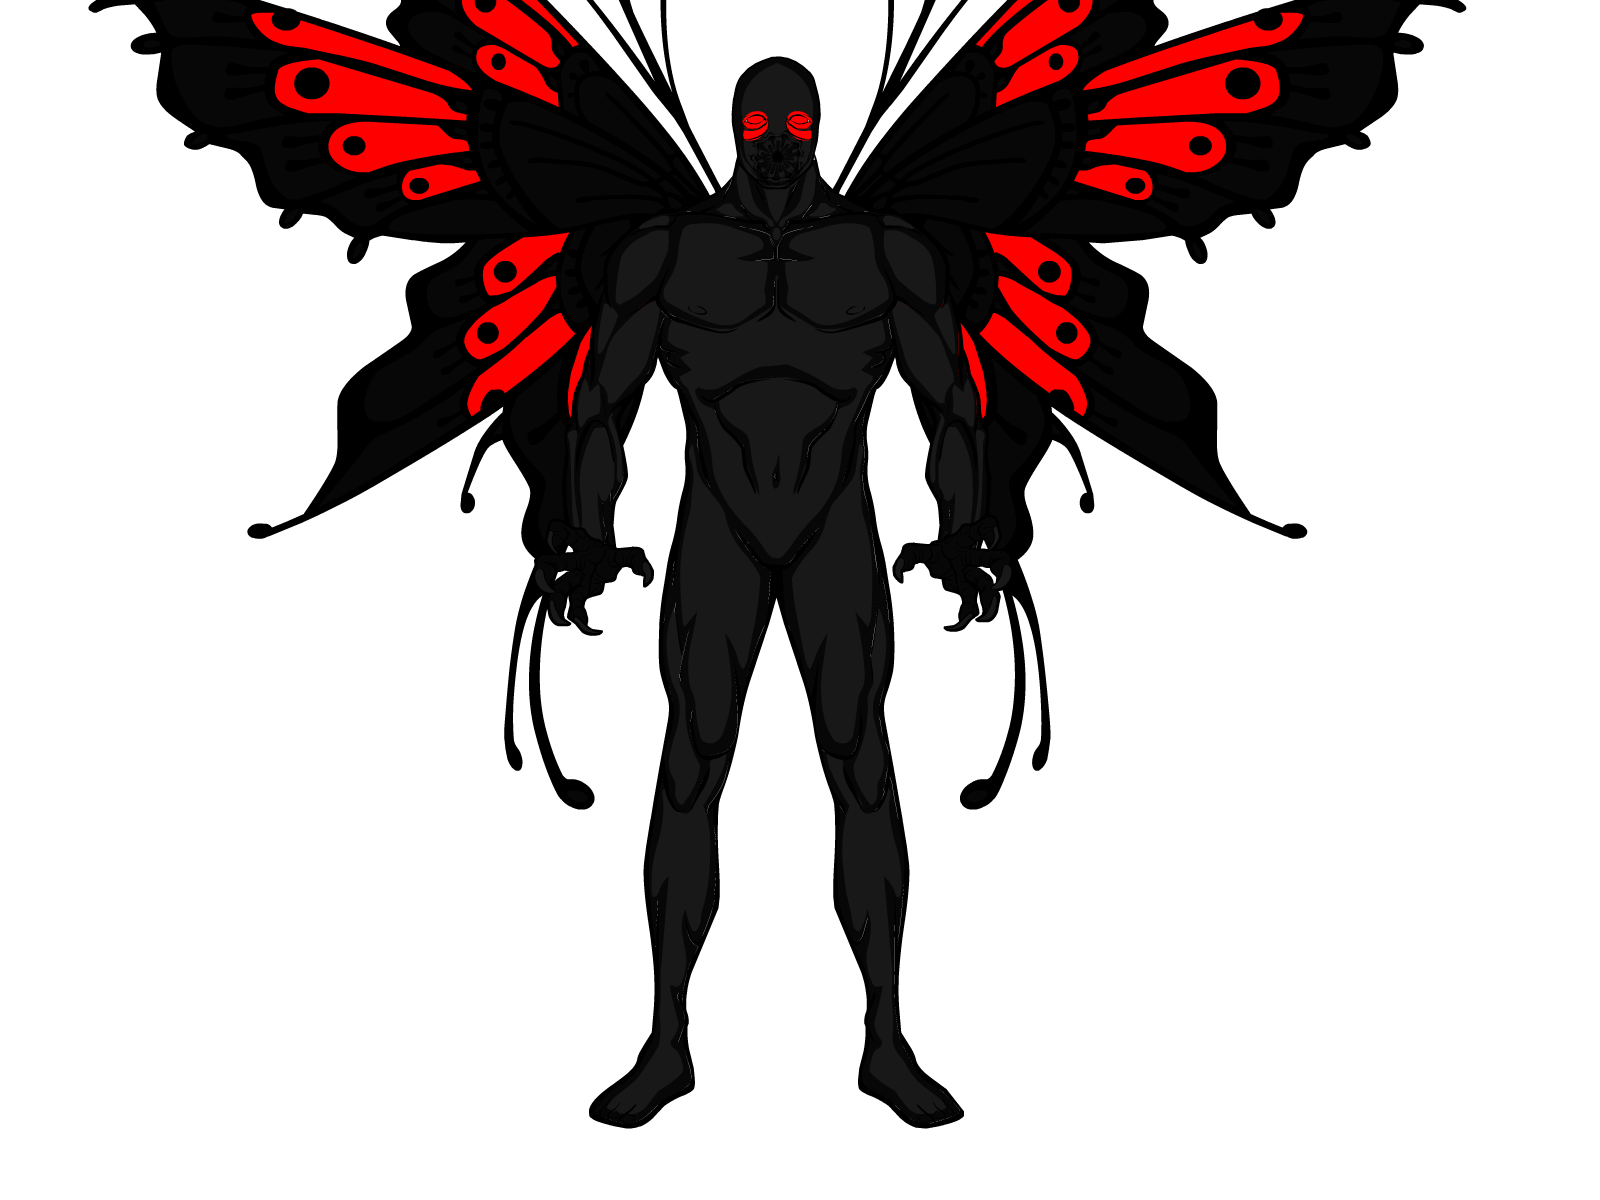 png 1600x1200 Mothman wings black background - Mothman PNG